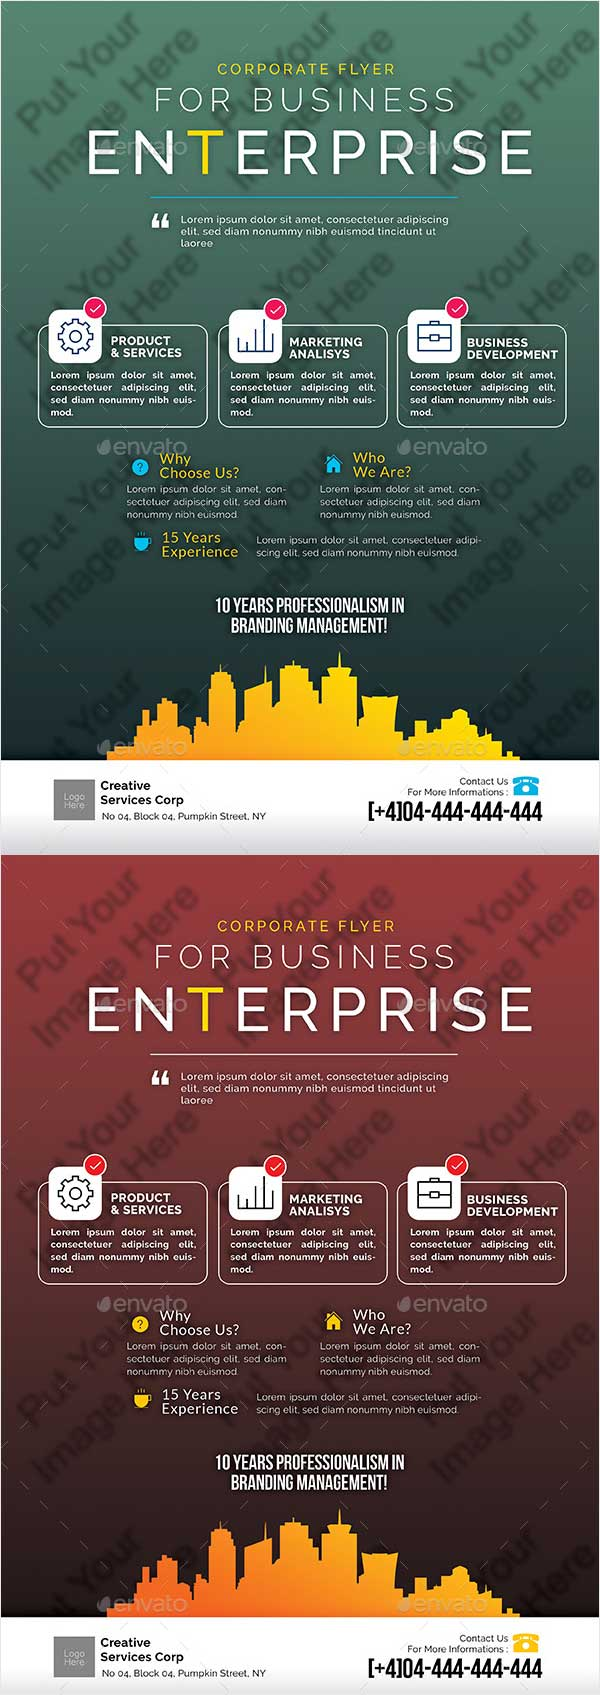 Business-Flyer-26